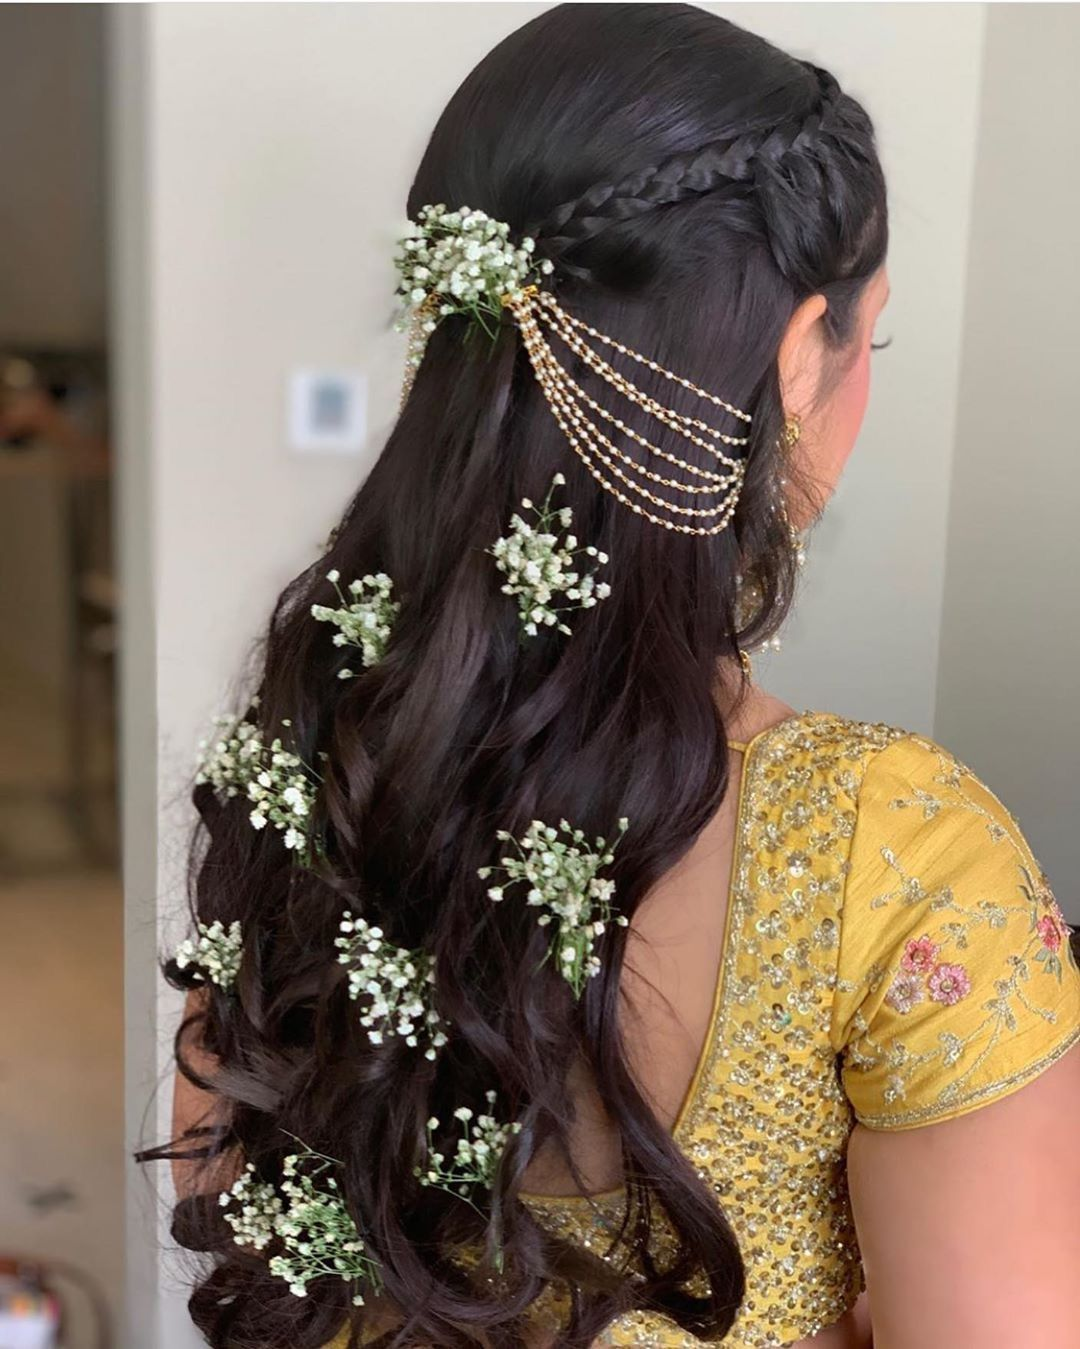 Instagram Alert Fresh Flower Hairstyles Super Pretty Ways To Use Flowers In Your Hair Witty Vows Bride Hairstyles Indian Bride Hairstyle Traditional Hairstyle